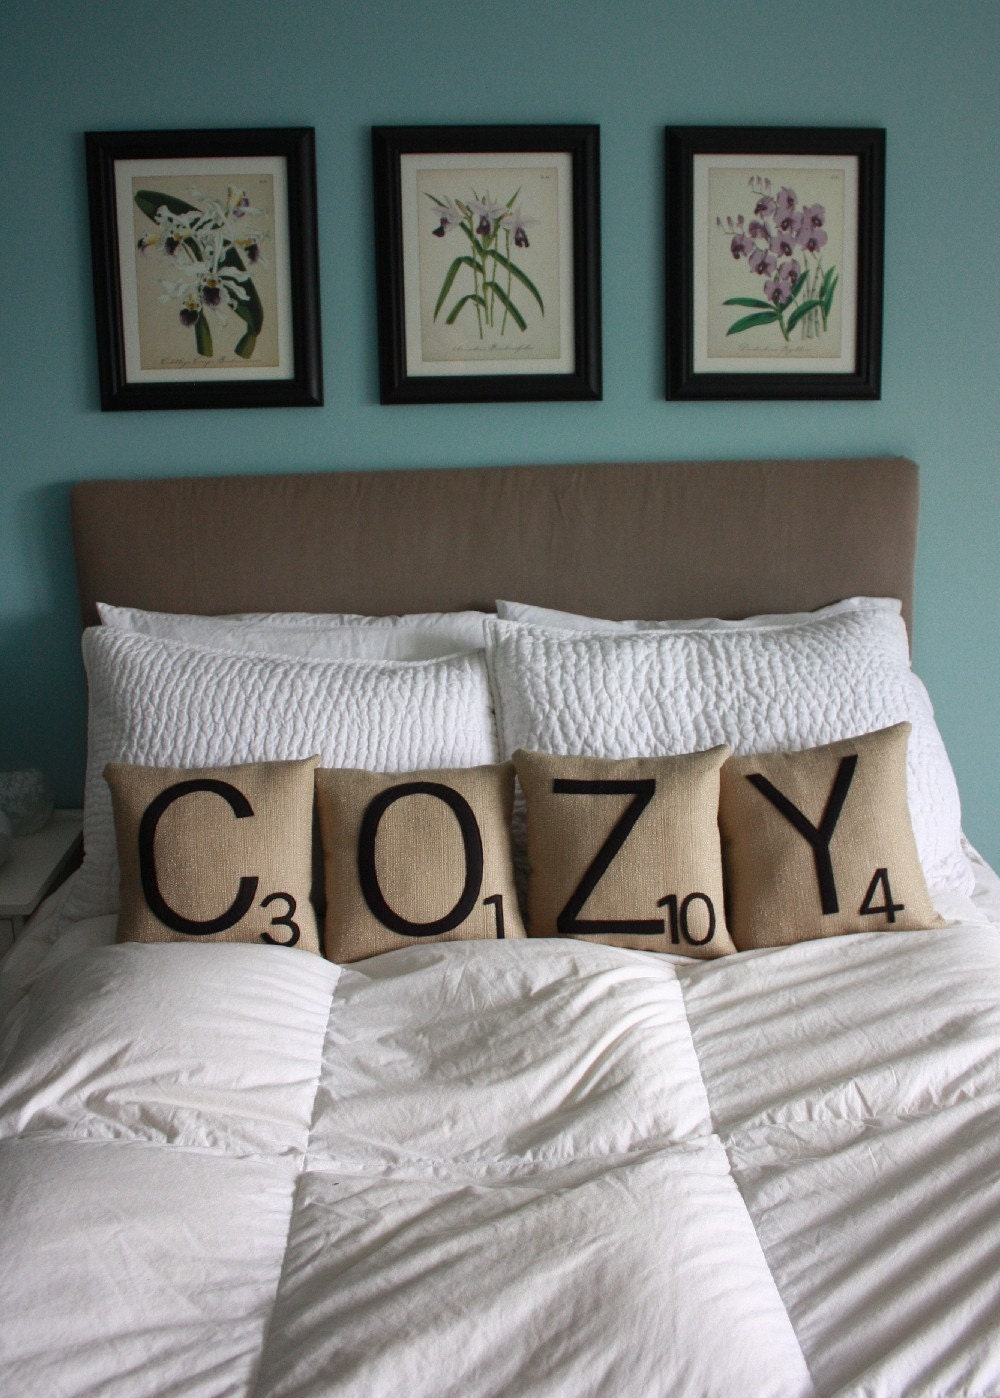 COZY - CASES ONLY